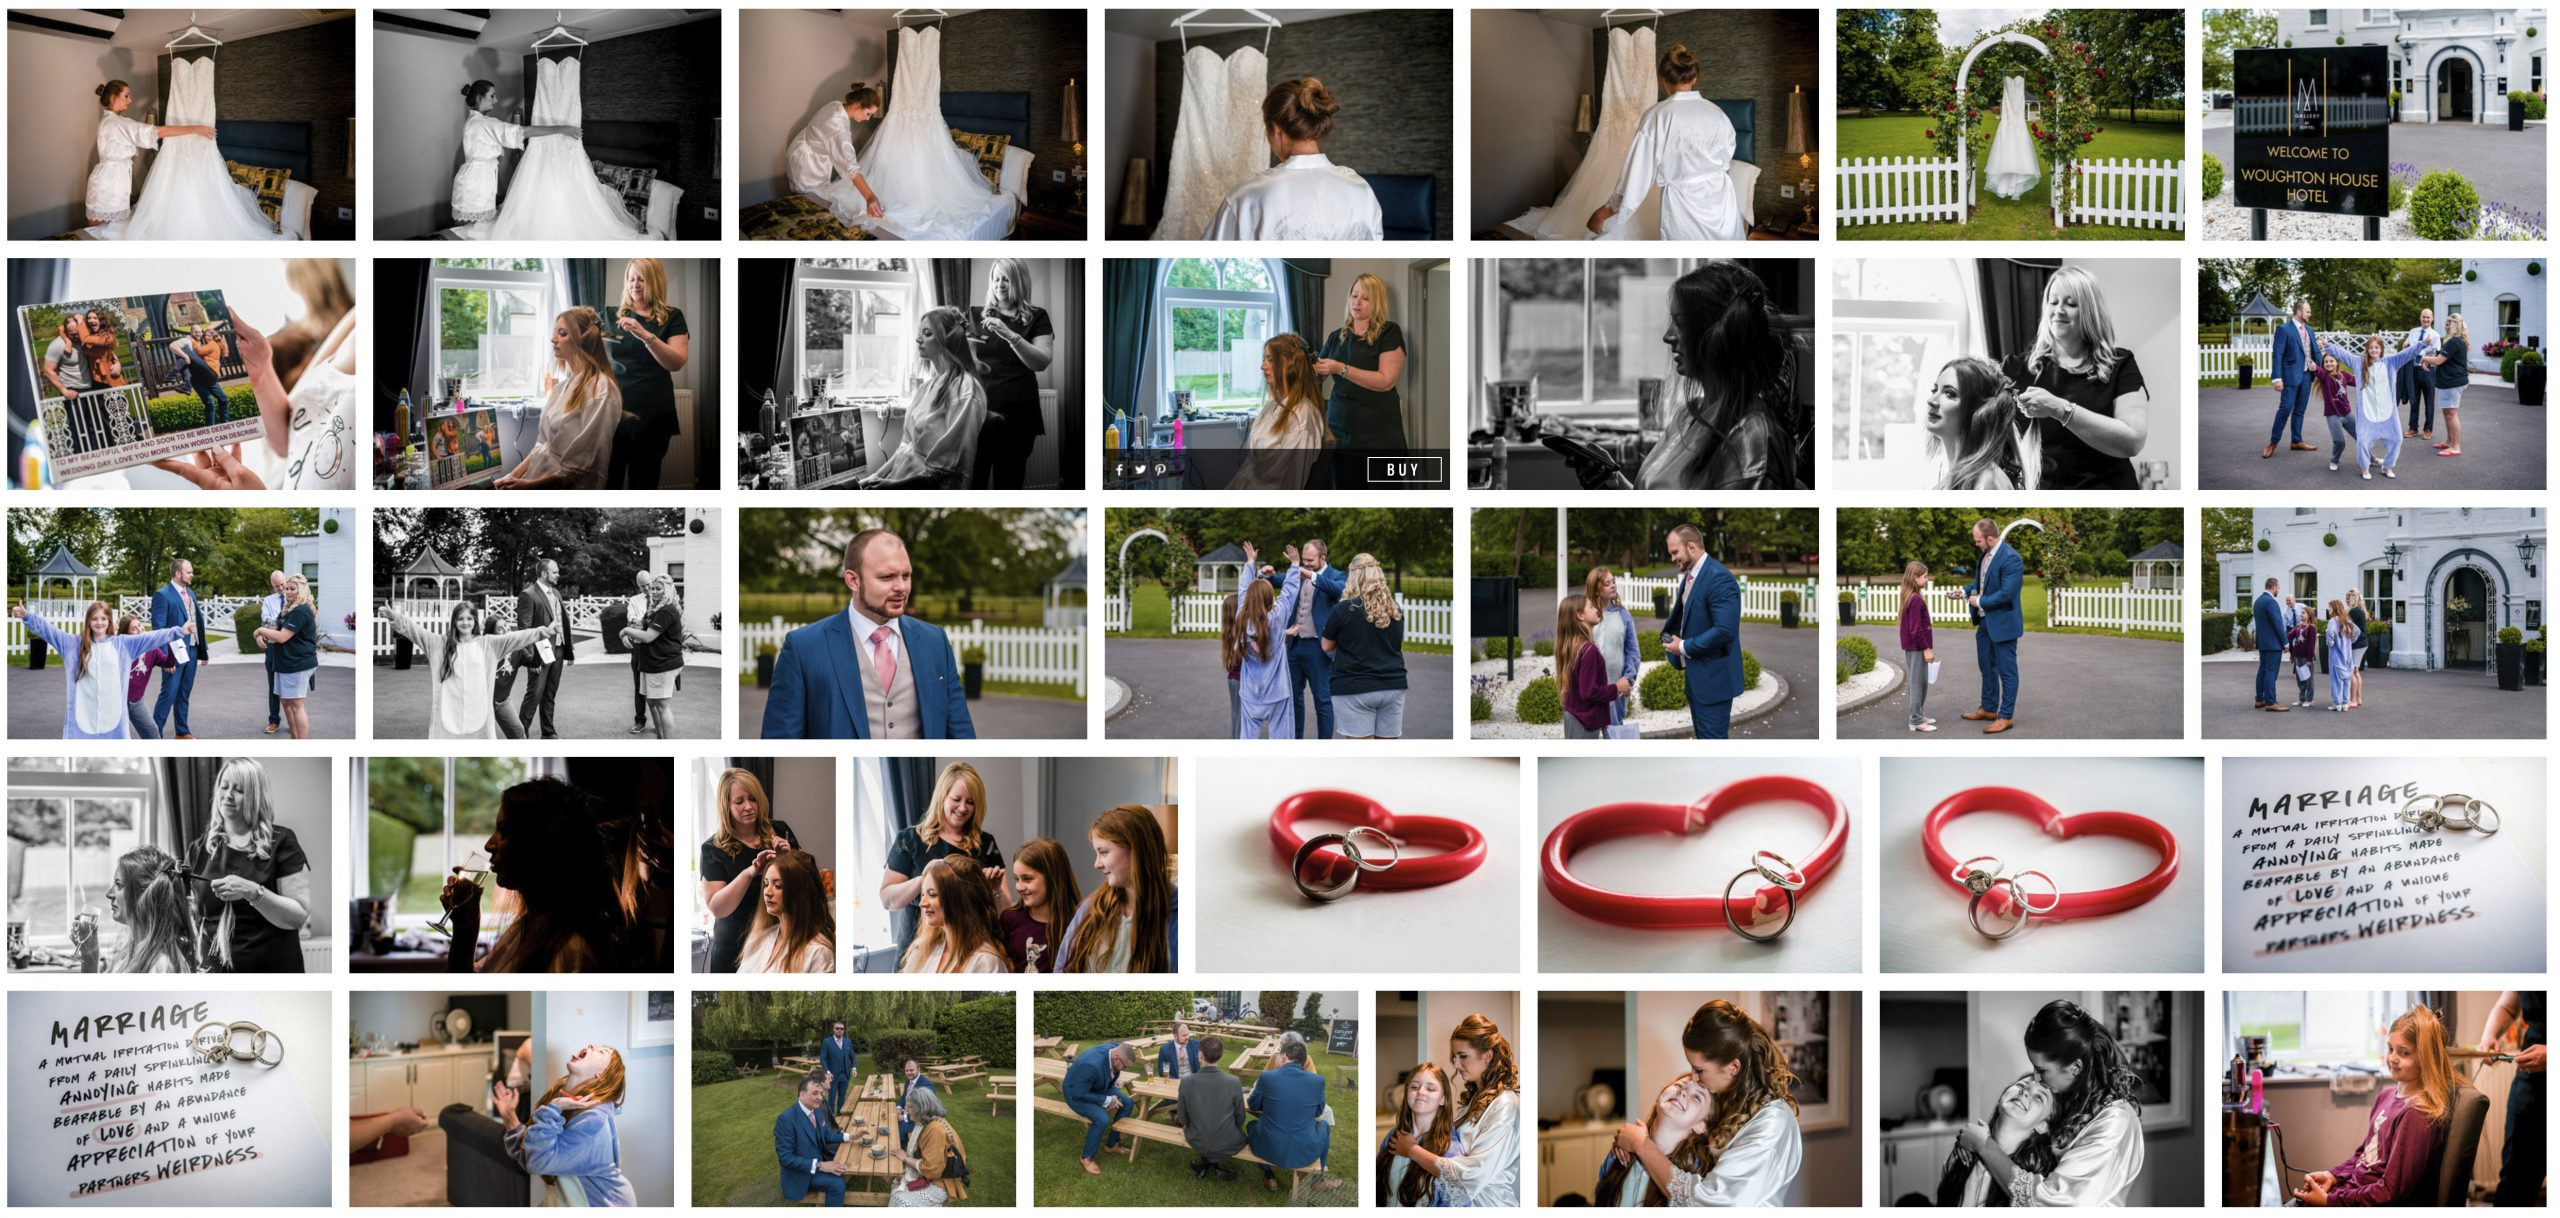 YFFUK-Phil-Endicott-Useful-things-website-image-showing-photo-delivery-of-weddings-photographs